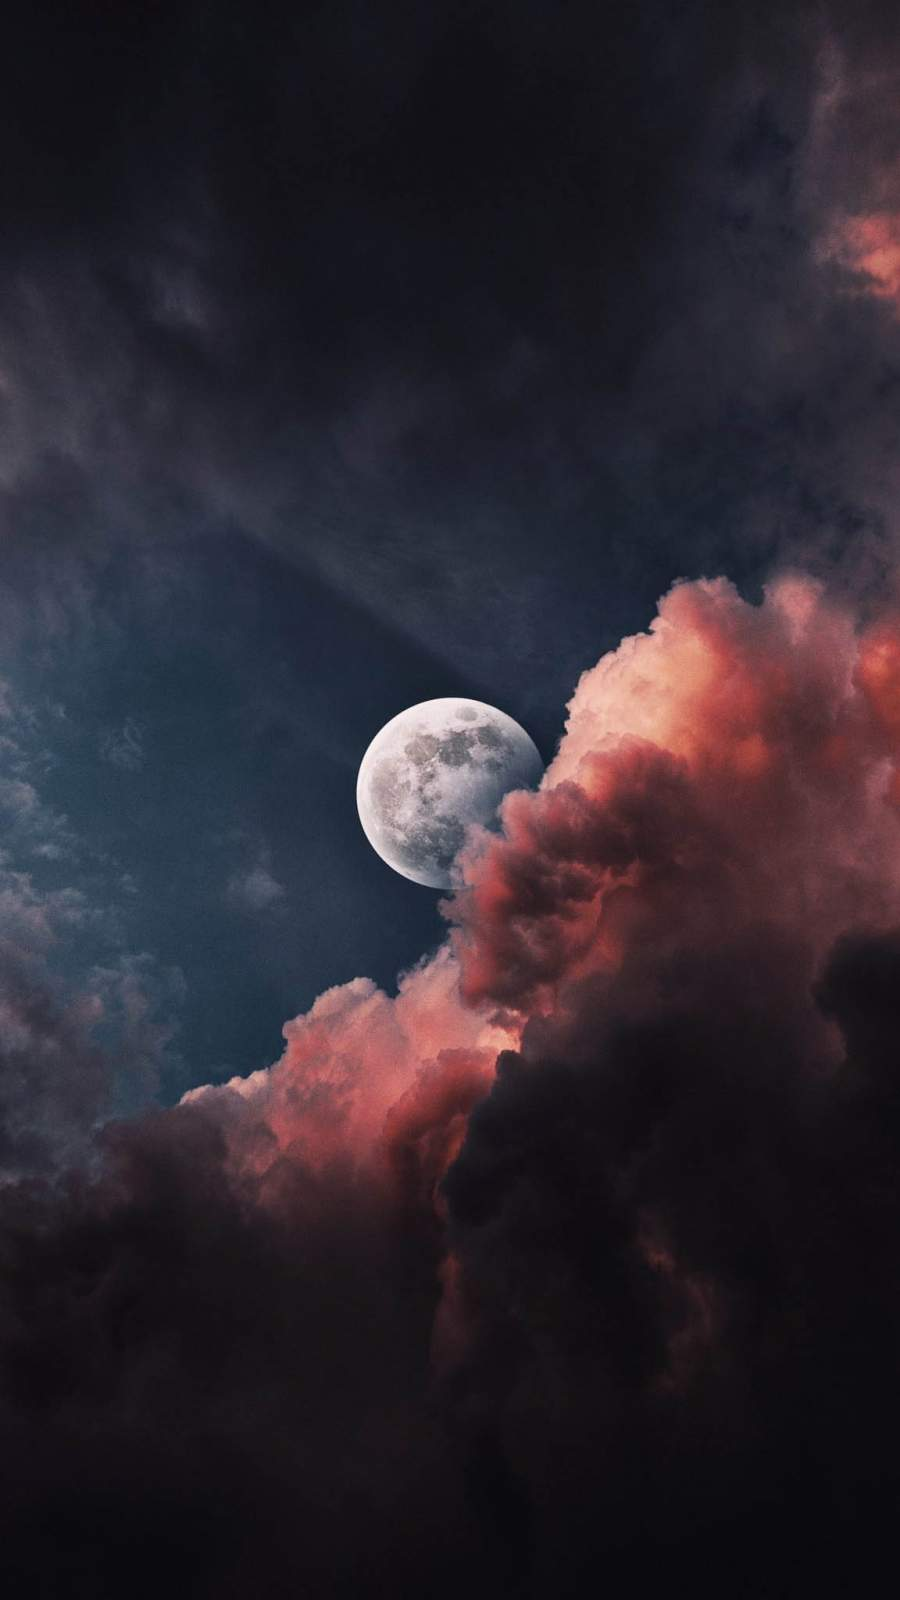 Moon Hiding in Clouds